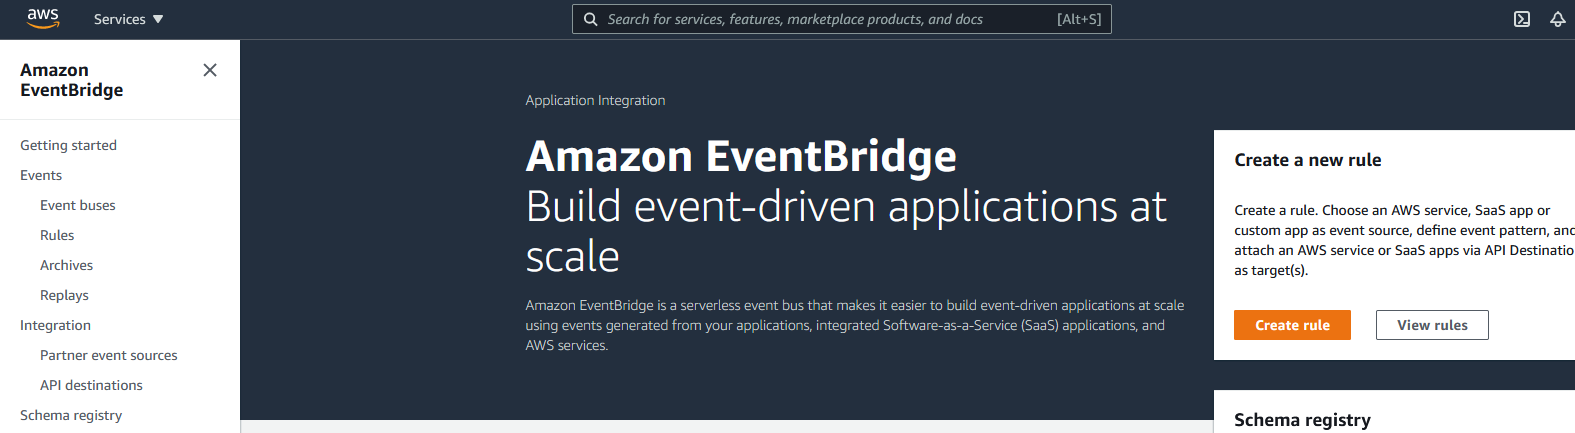 AWS EventBridge dashboard with some navigation along the left.